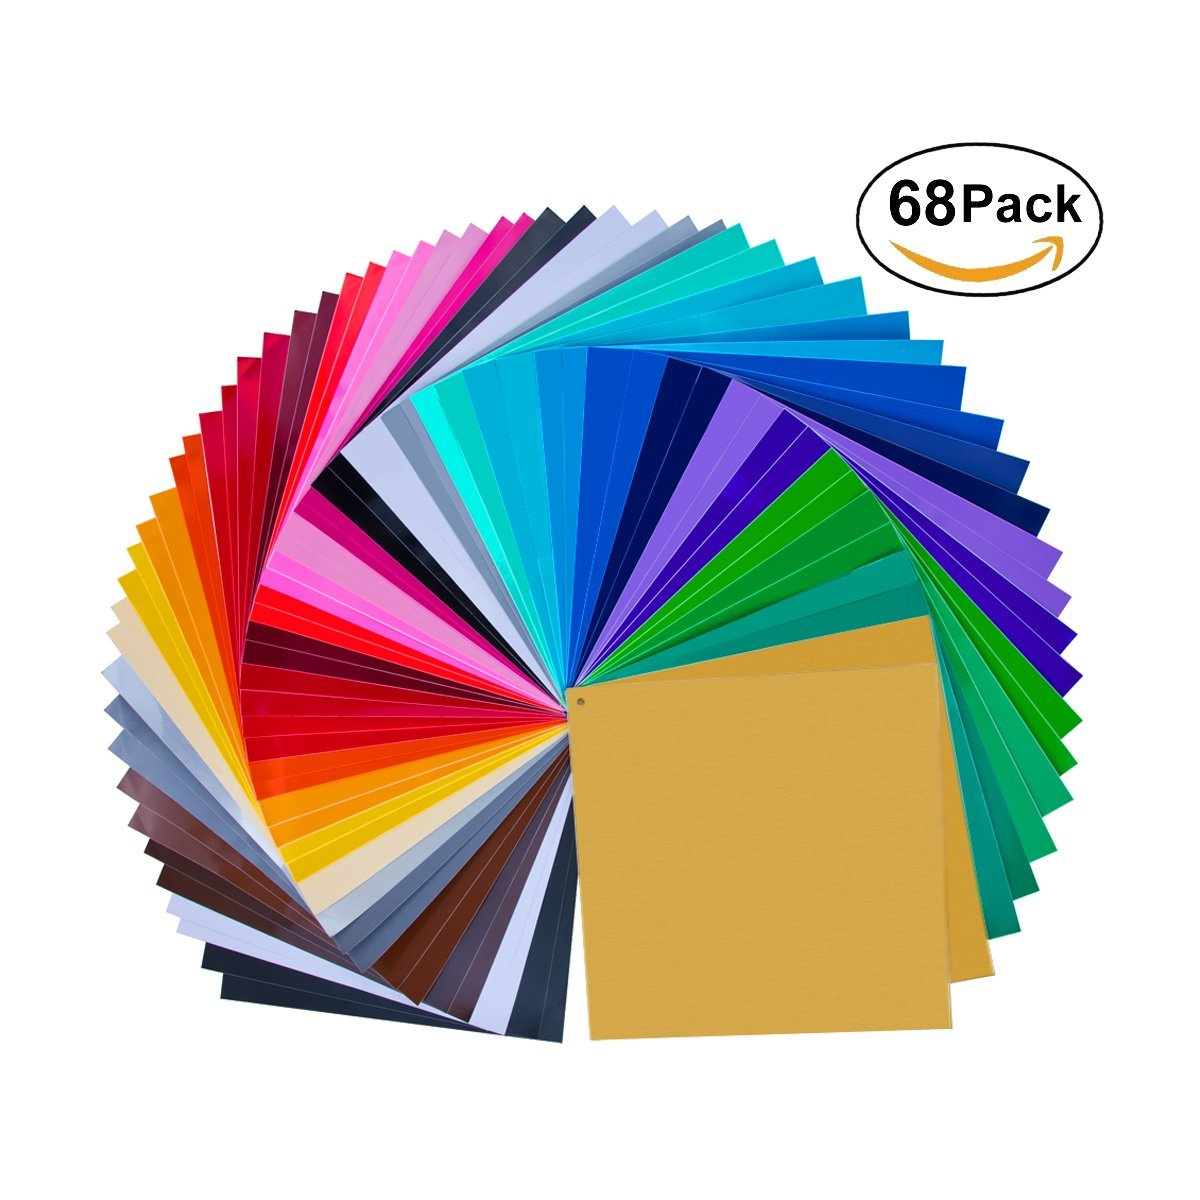 "Vinyl Sheets 68 Pack 12"" X 12"" Premium Permanent Self Adhesive-Assorted Colors (Glossy,Matt,Metallic and Brushed Metallic) for Cricut,Silhouette Cameo,Craft Cutters,Printers,Letters,Decals"